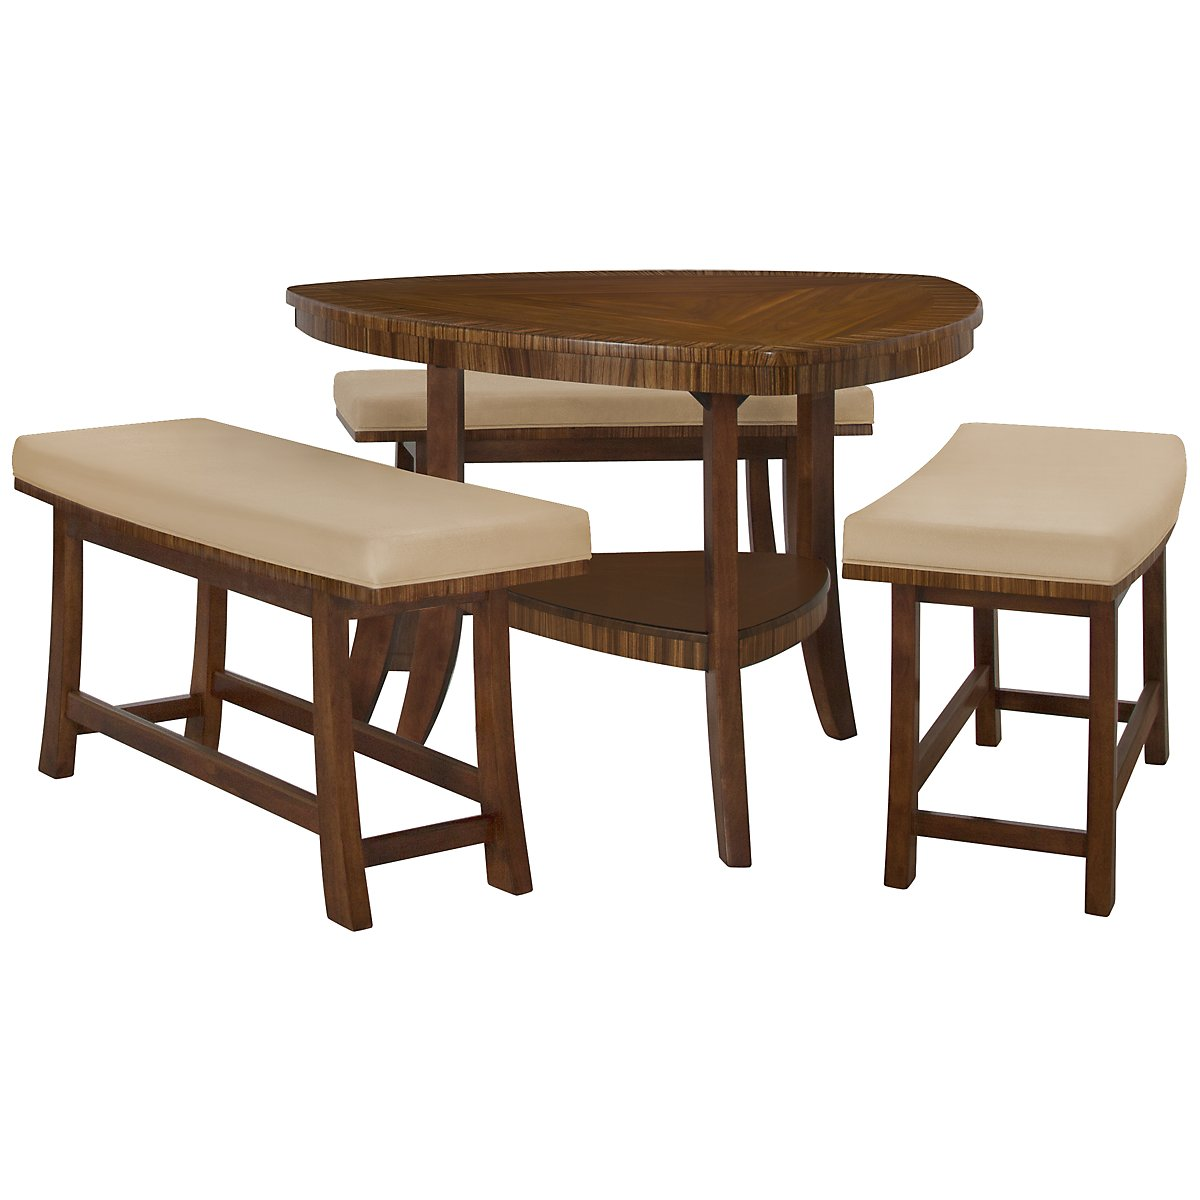 Milan Mid Tone Triangular High Table & 3 Benches